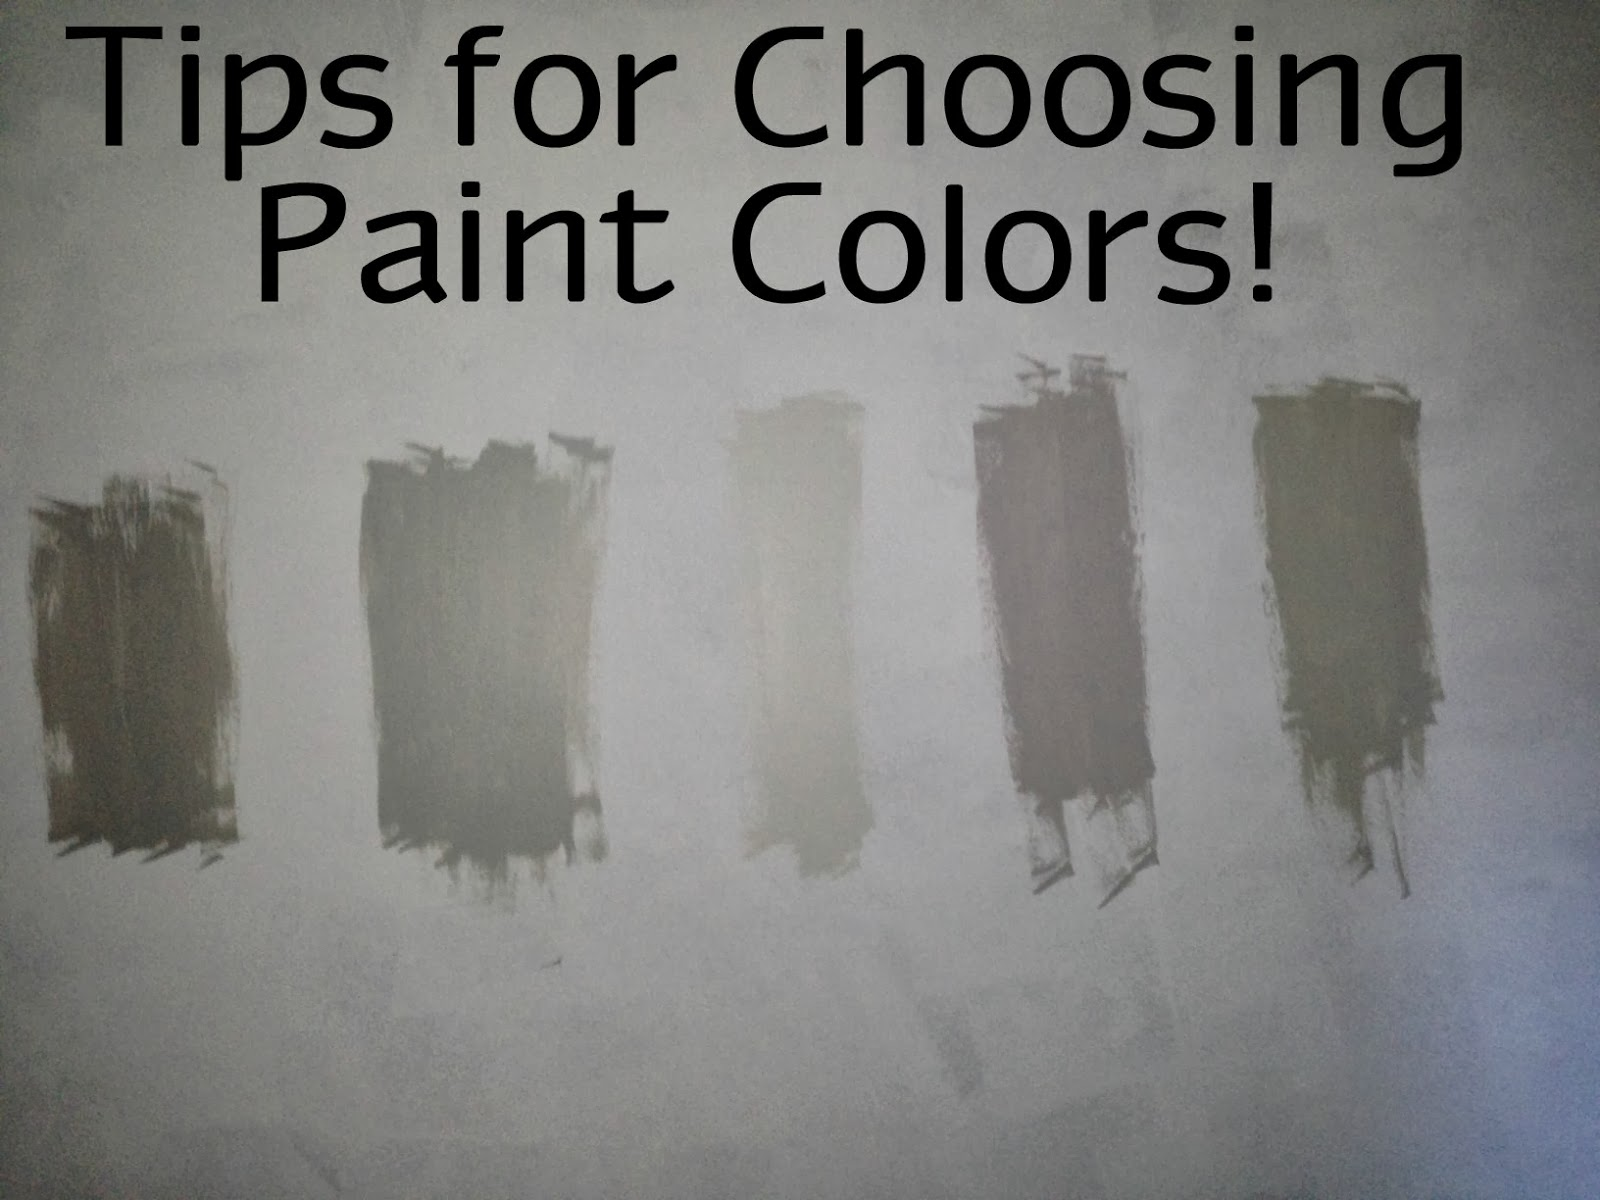 How to pick a paint color ellis page Pick paint colors